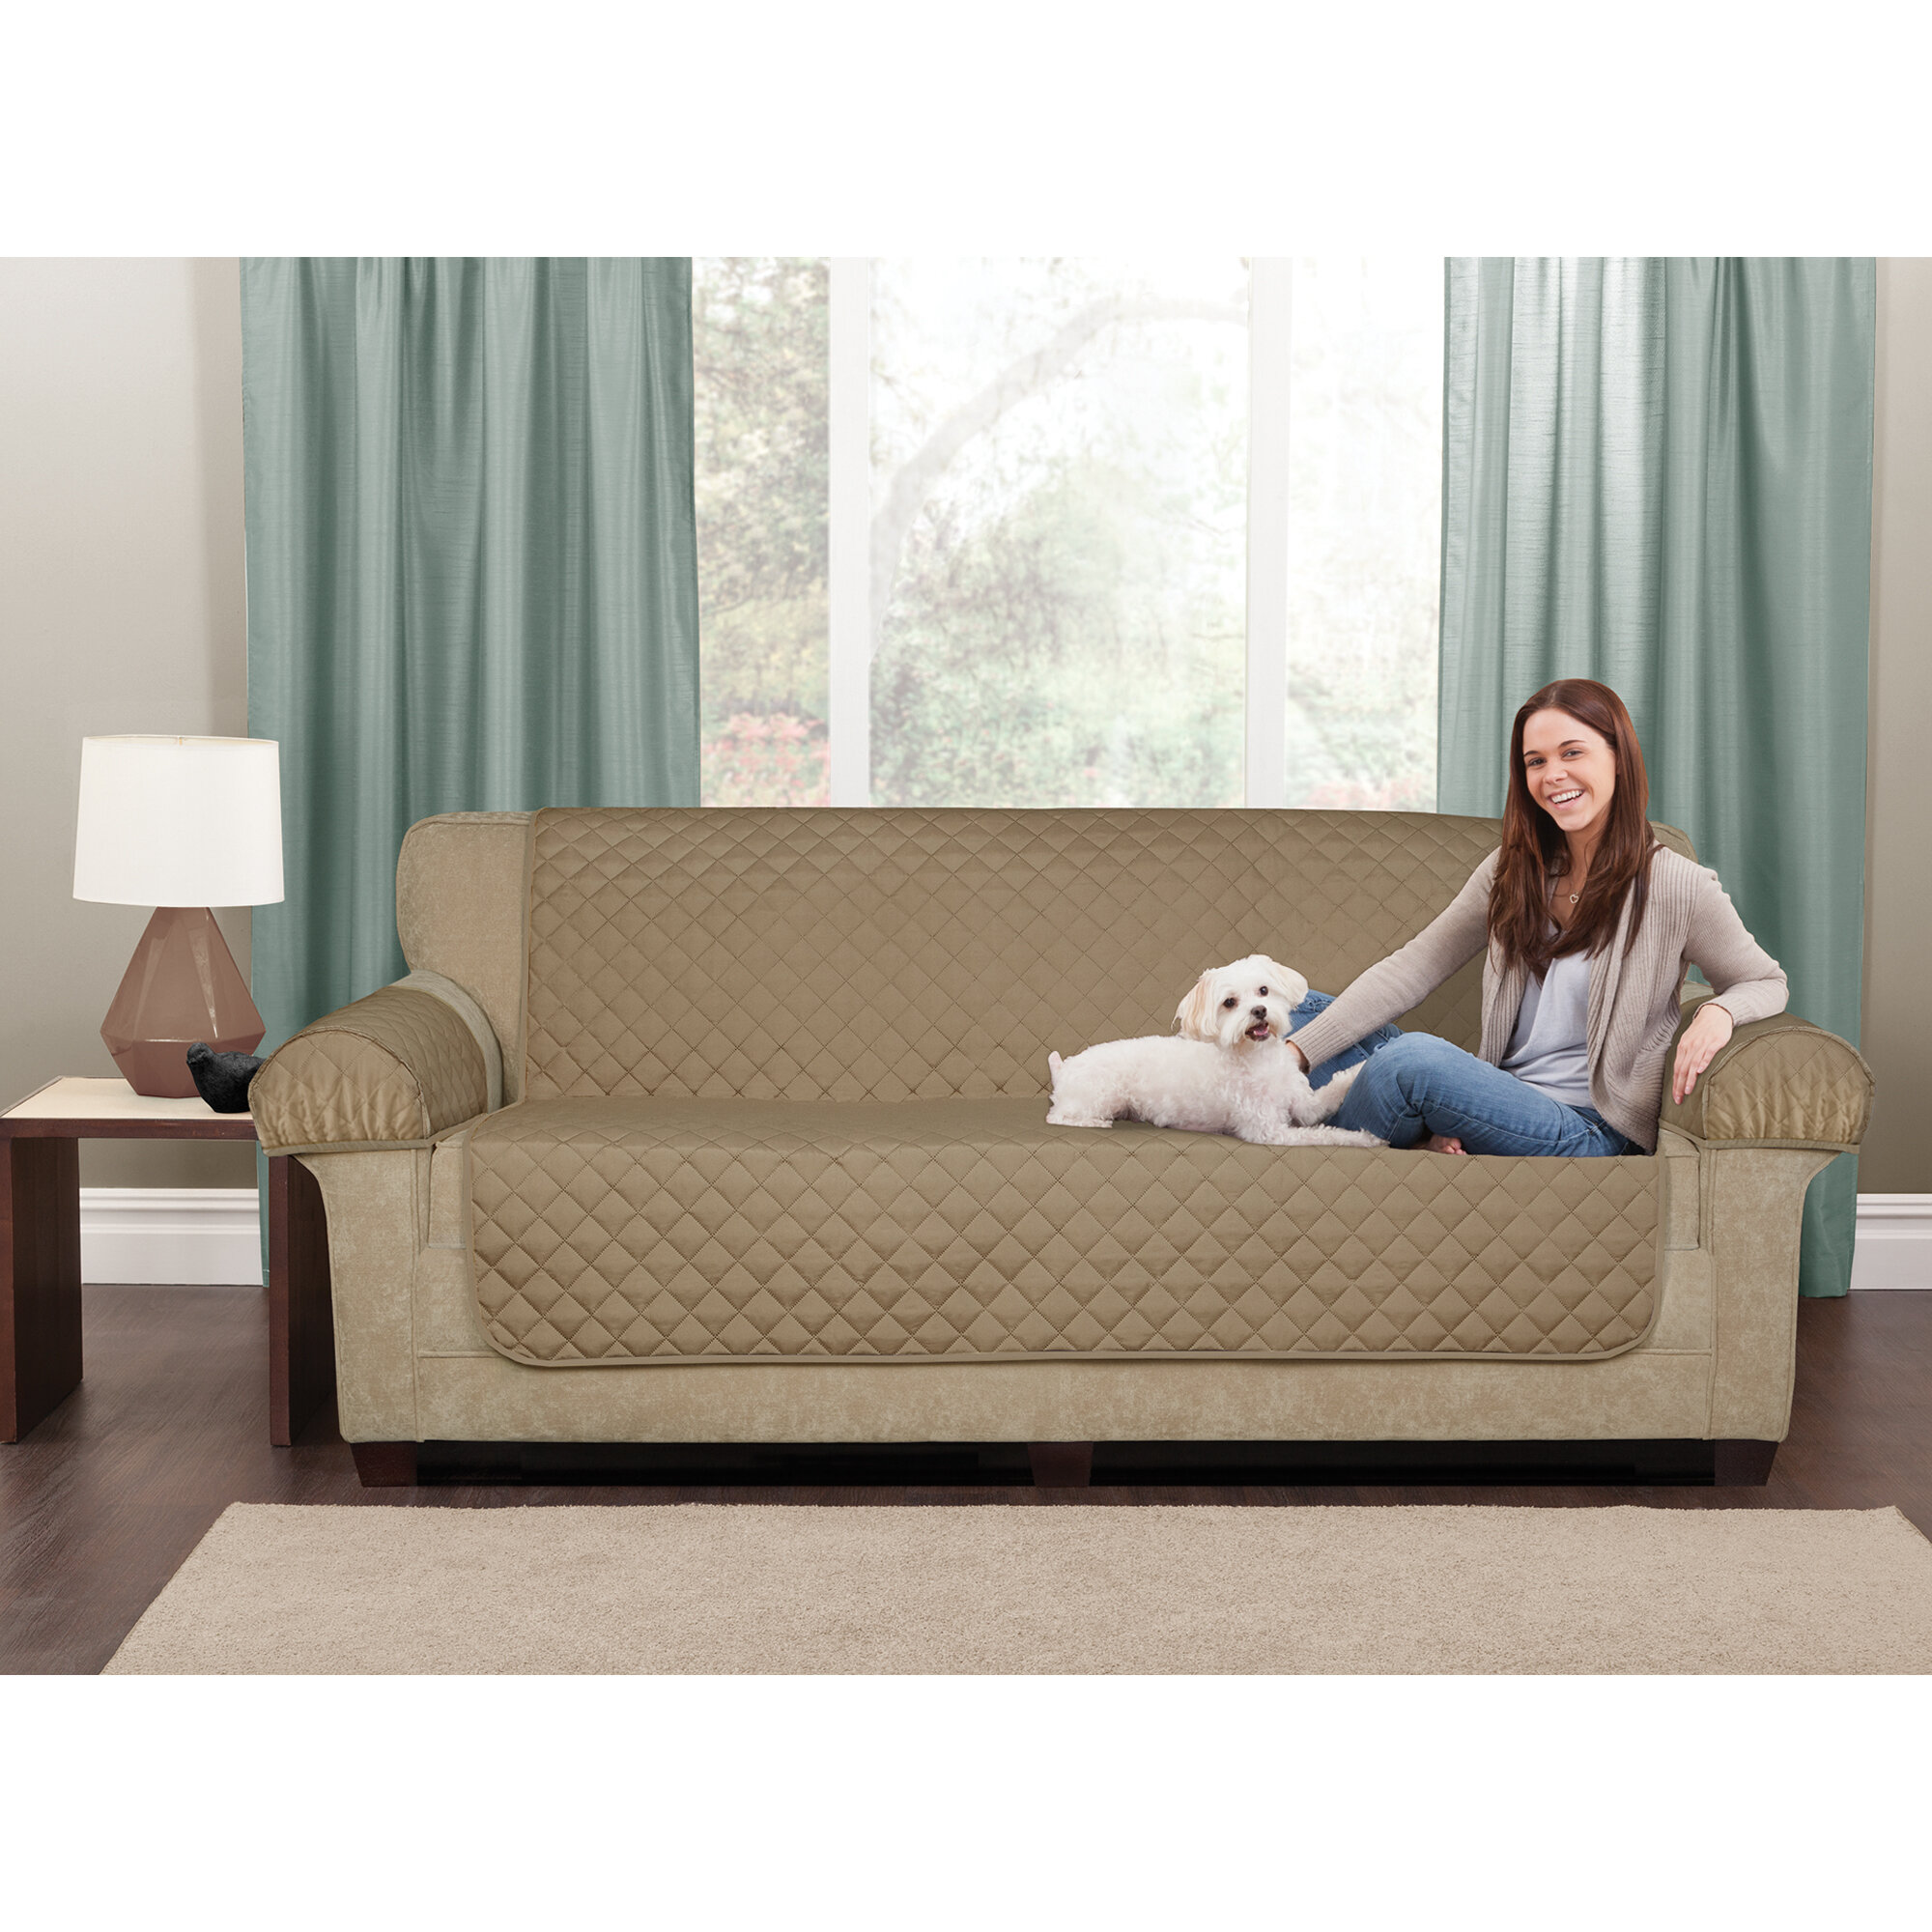 Maytex Waterproof 3 Piece Box Cushion Loveseat Slipcover Set Wayfair